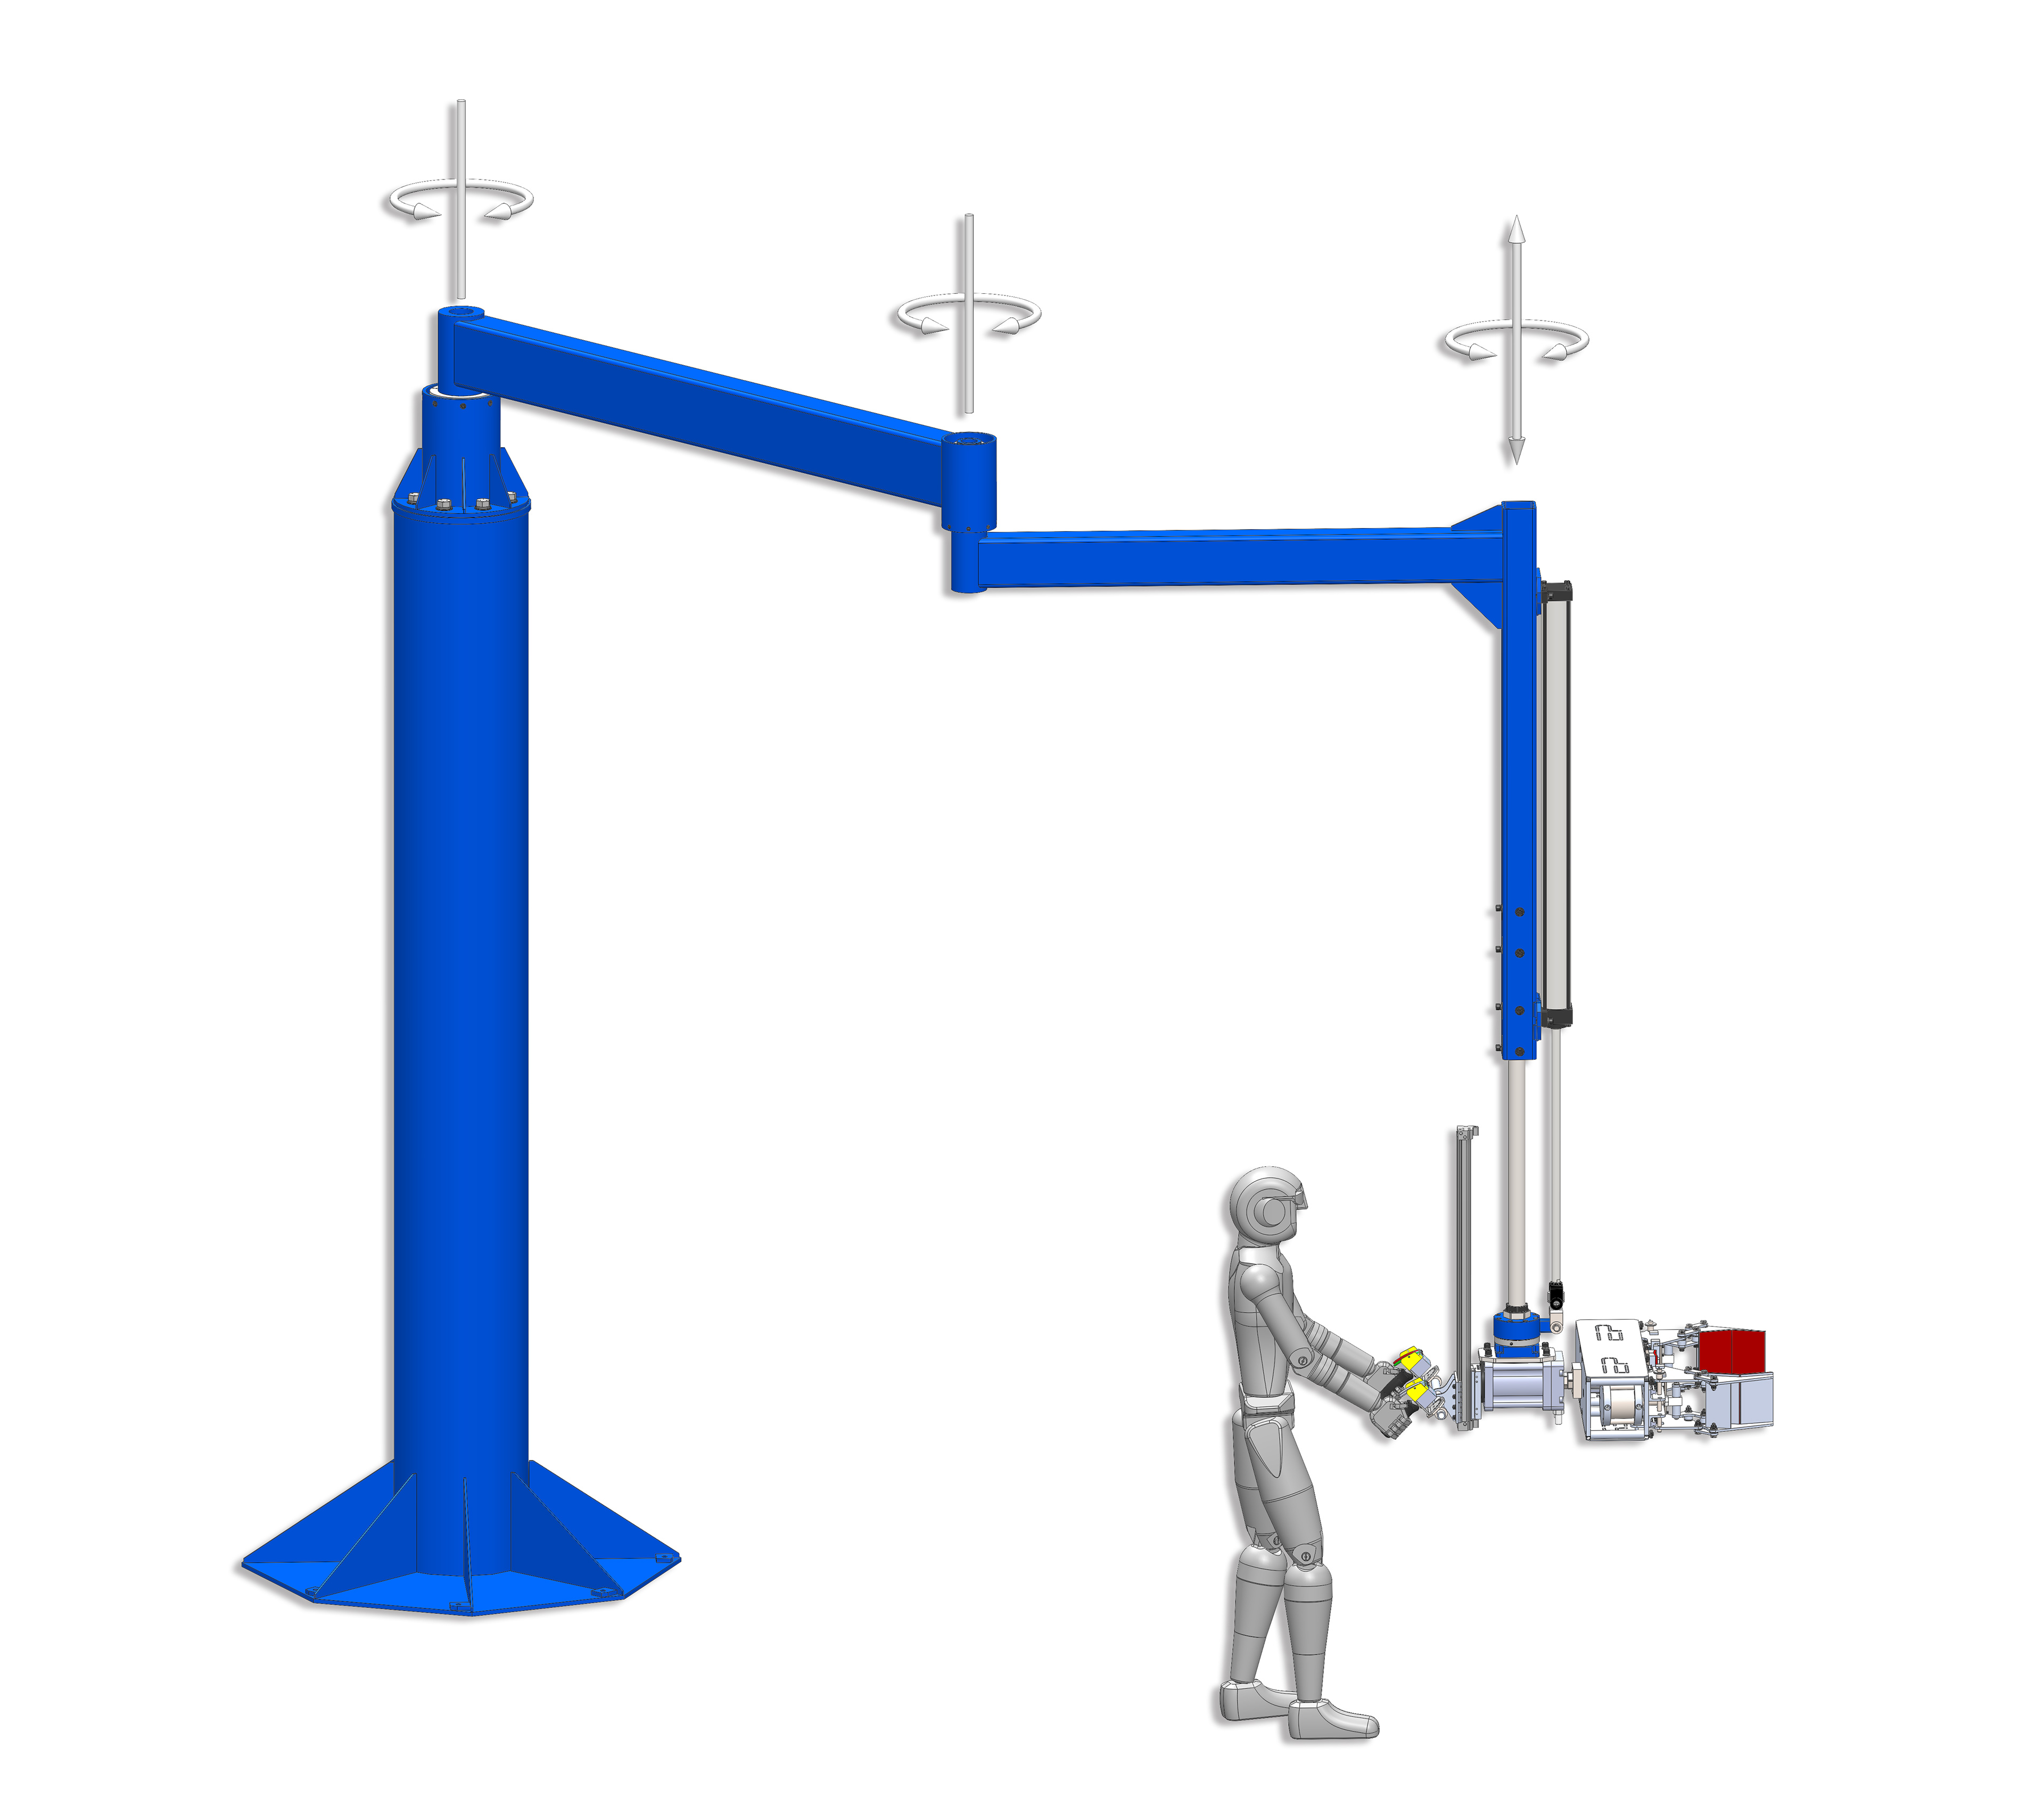 Articulating Arm Hoist : Manipulator arms hydraulic pneumatic vertical lifters